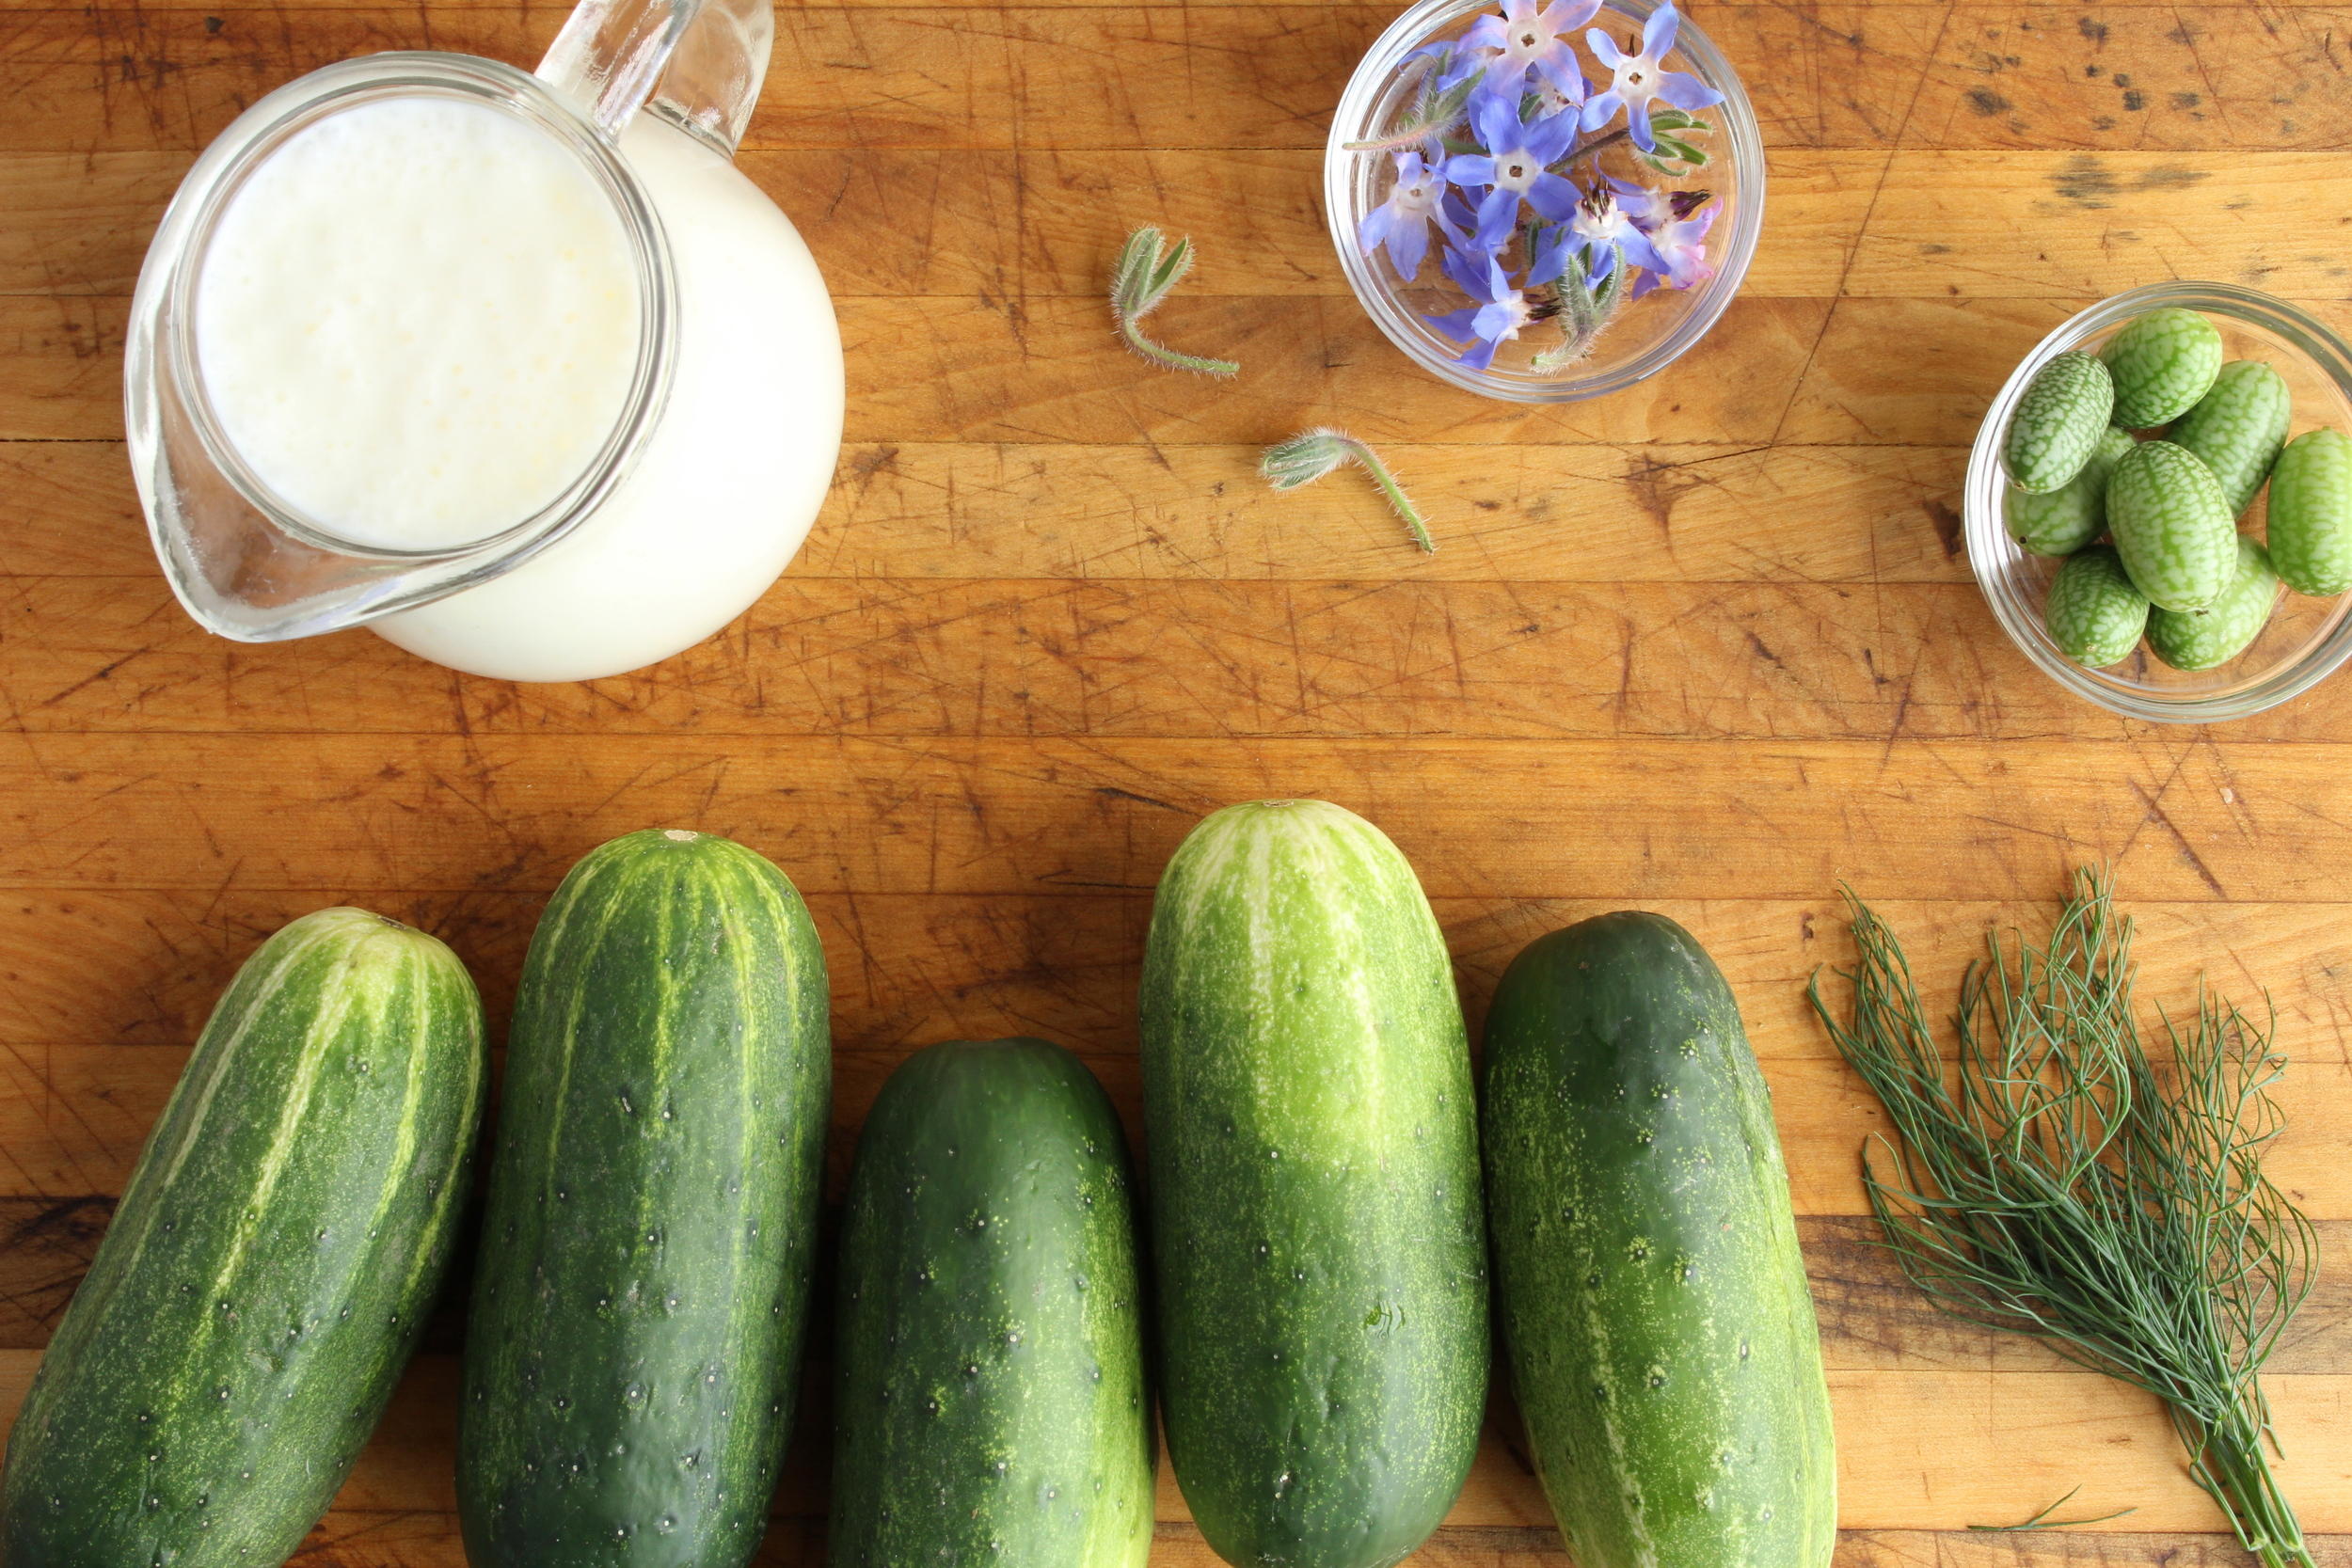 Cucumber salad mise en place: cucumbers, buttermilk, dill, and borage flowers (which have a bit of cucumber flavor).